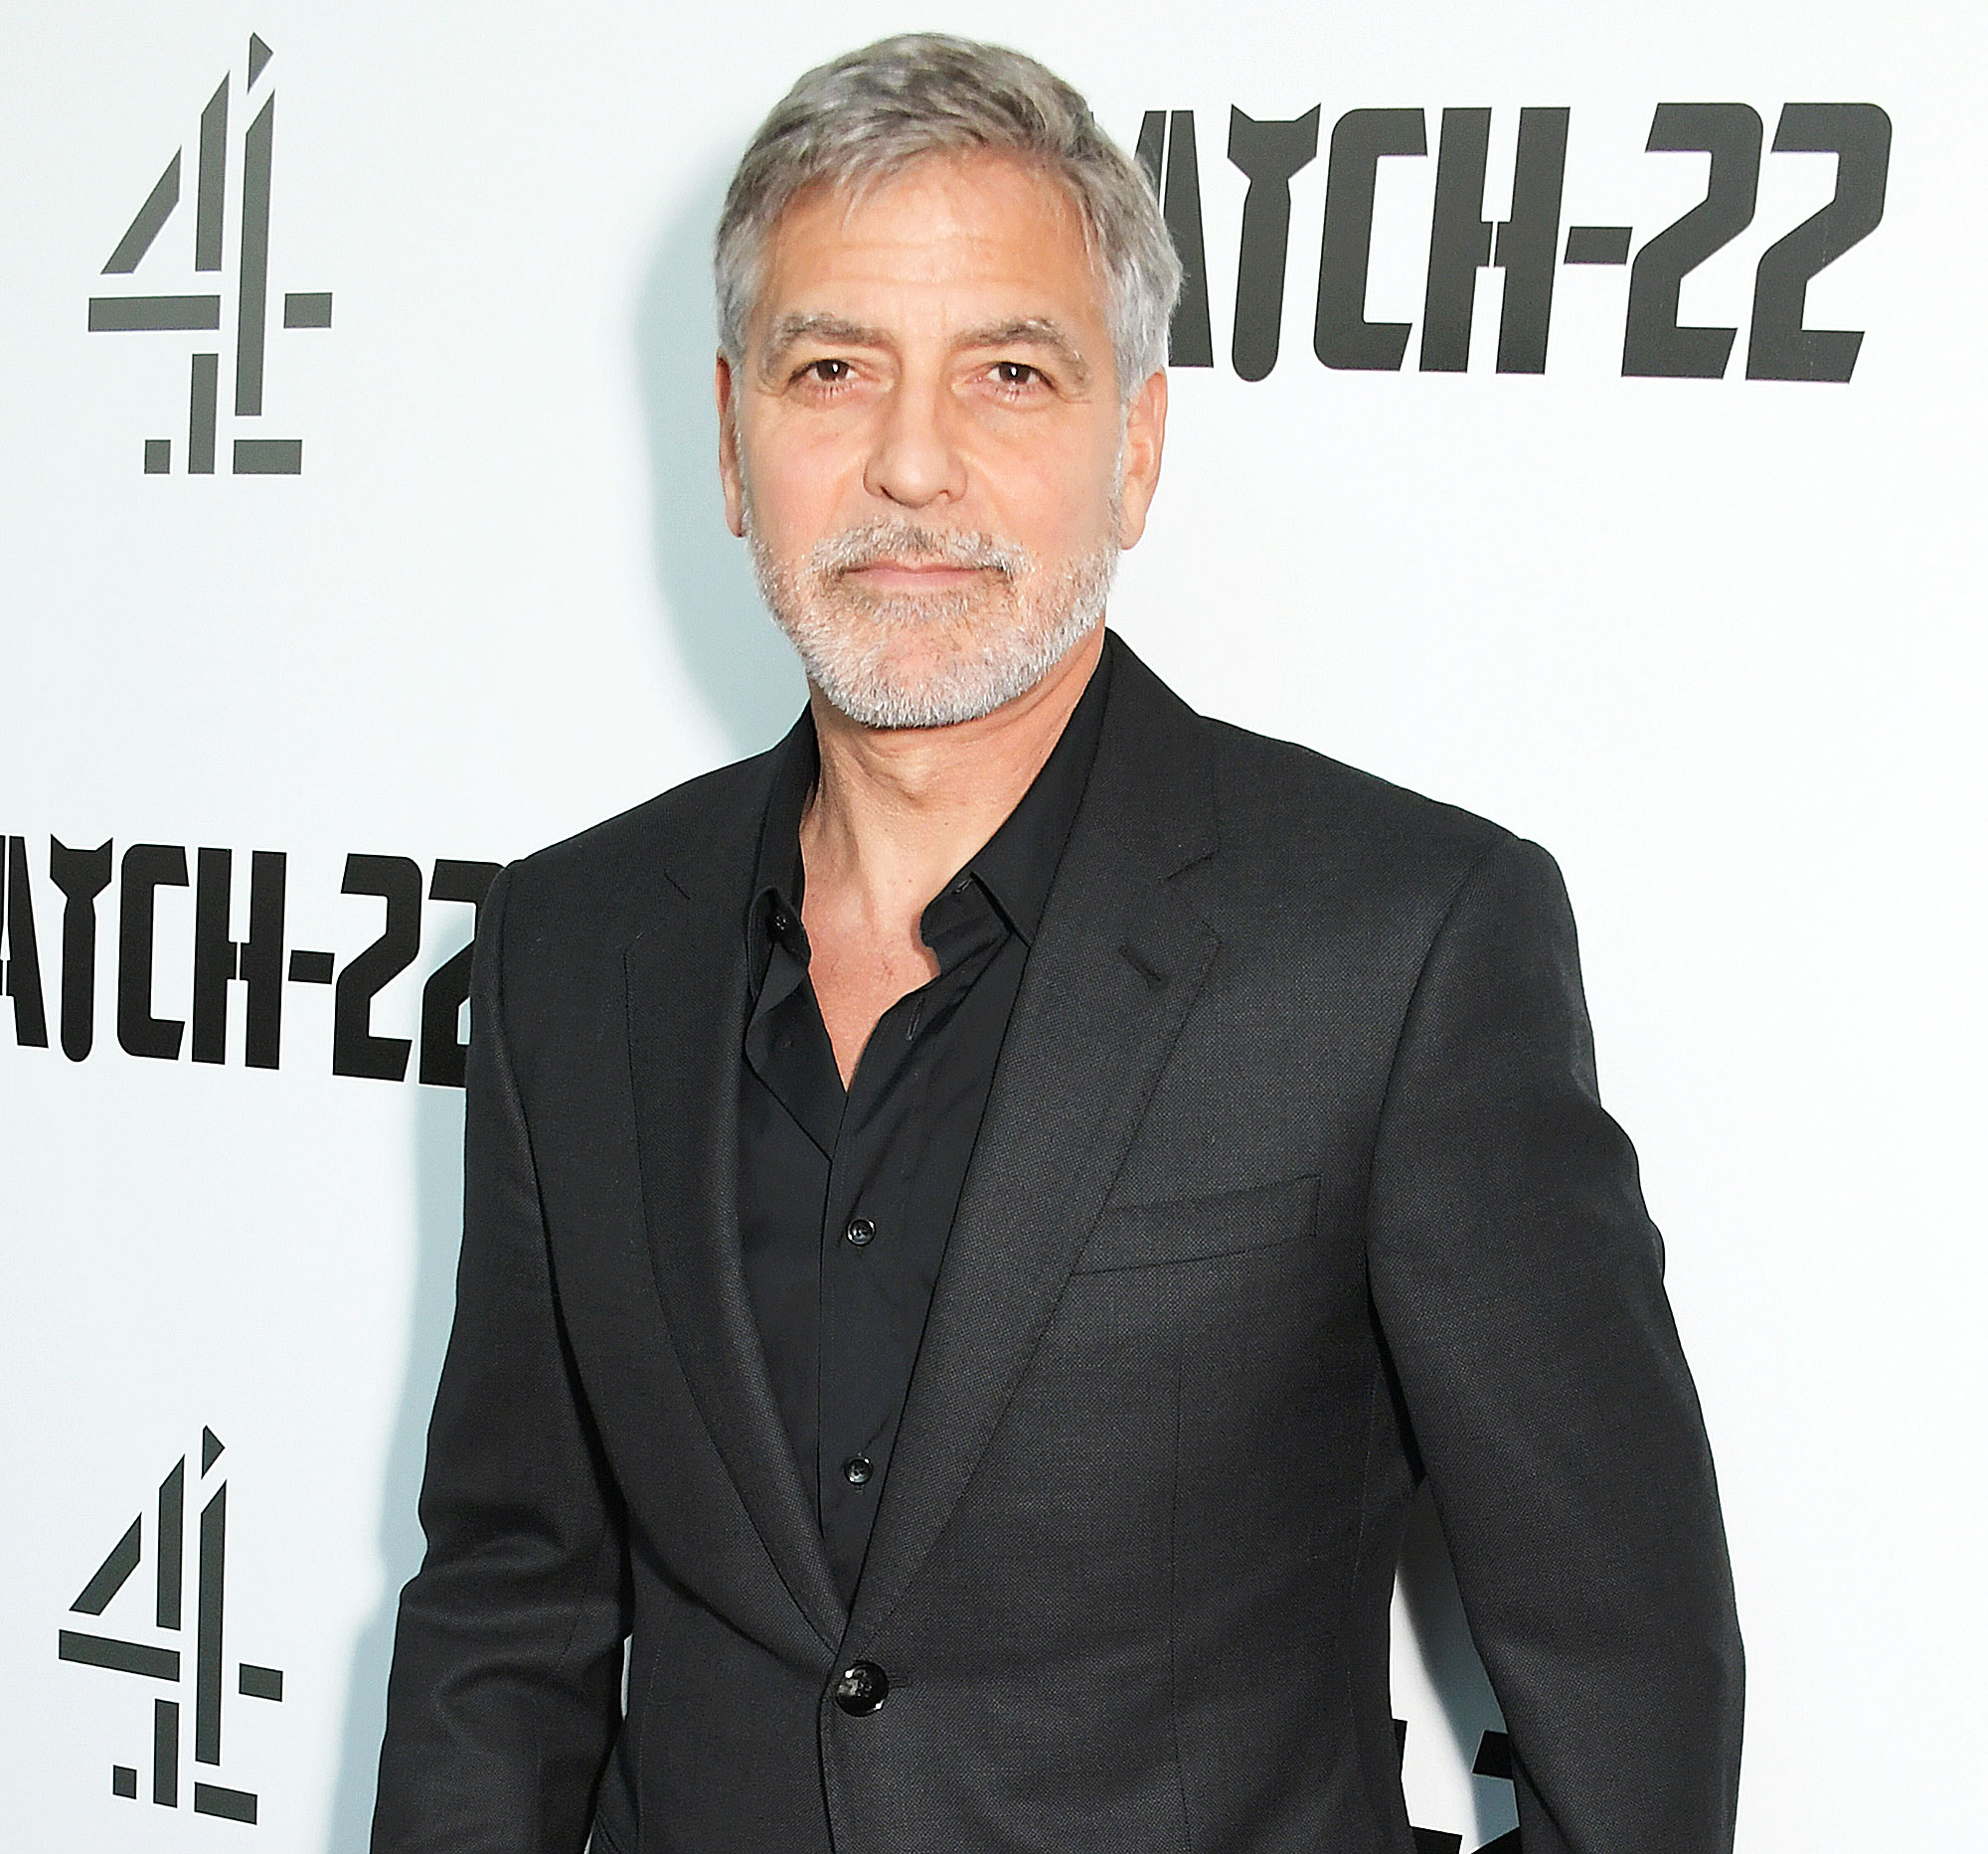 George Clooney Motorcycle Crash Die - George Clooney attends the London Premiere of new Channel 4 show 'Catch-22' at Vue Westfield on May 15, 2019.